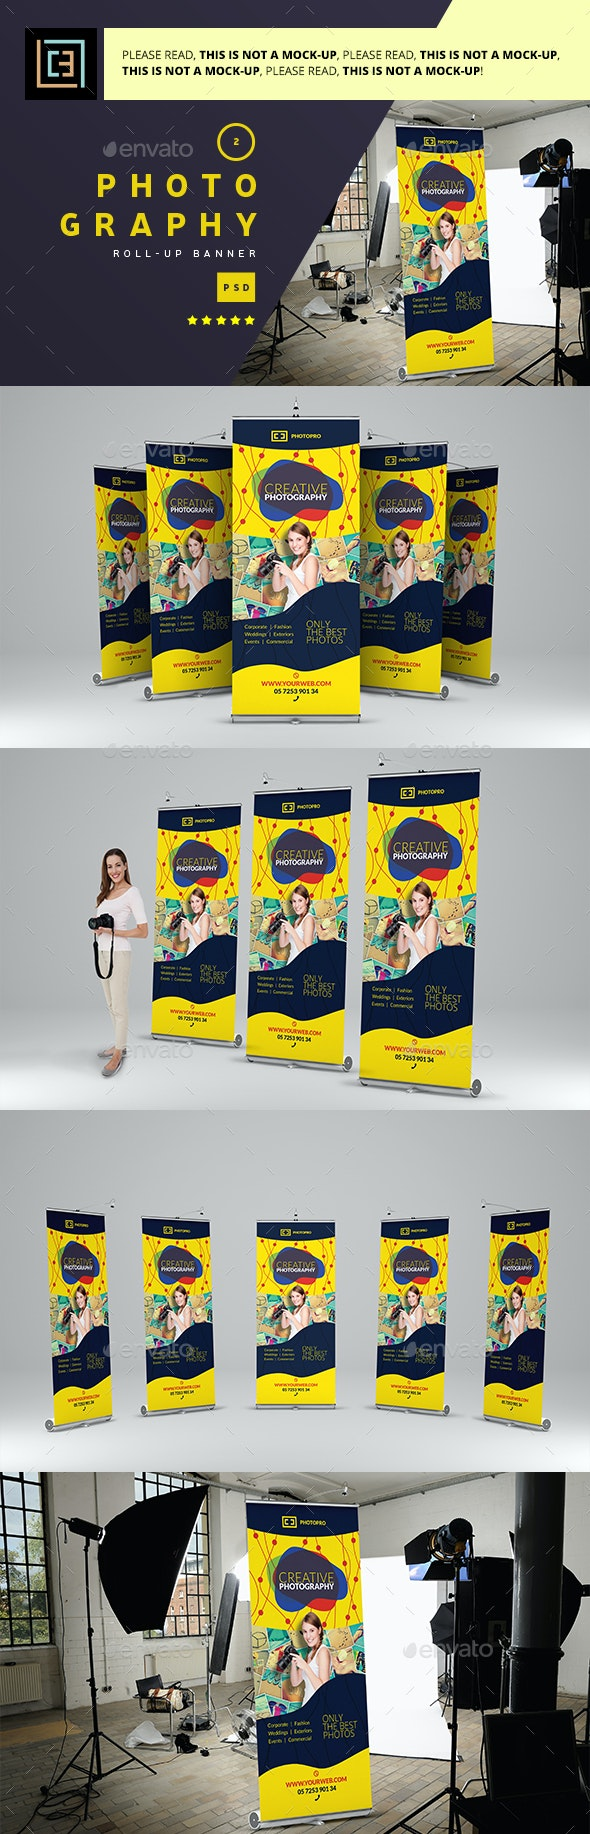 Photography - Roll-Up Banner 2 - Signage Print Templates